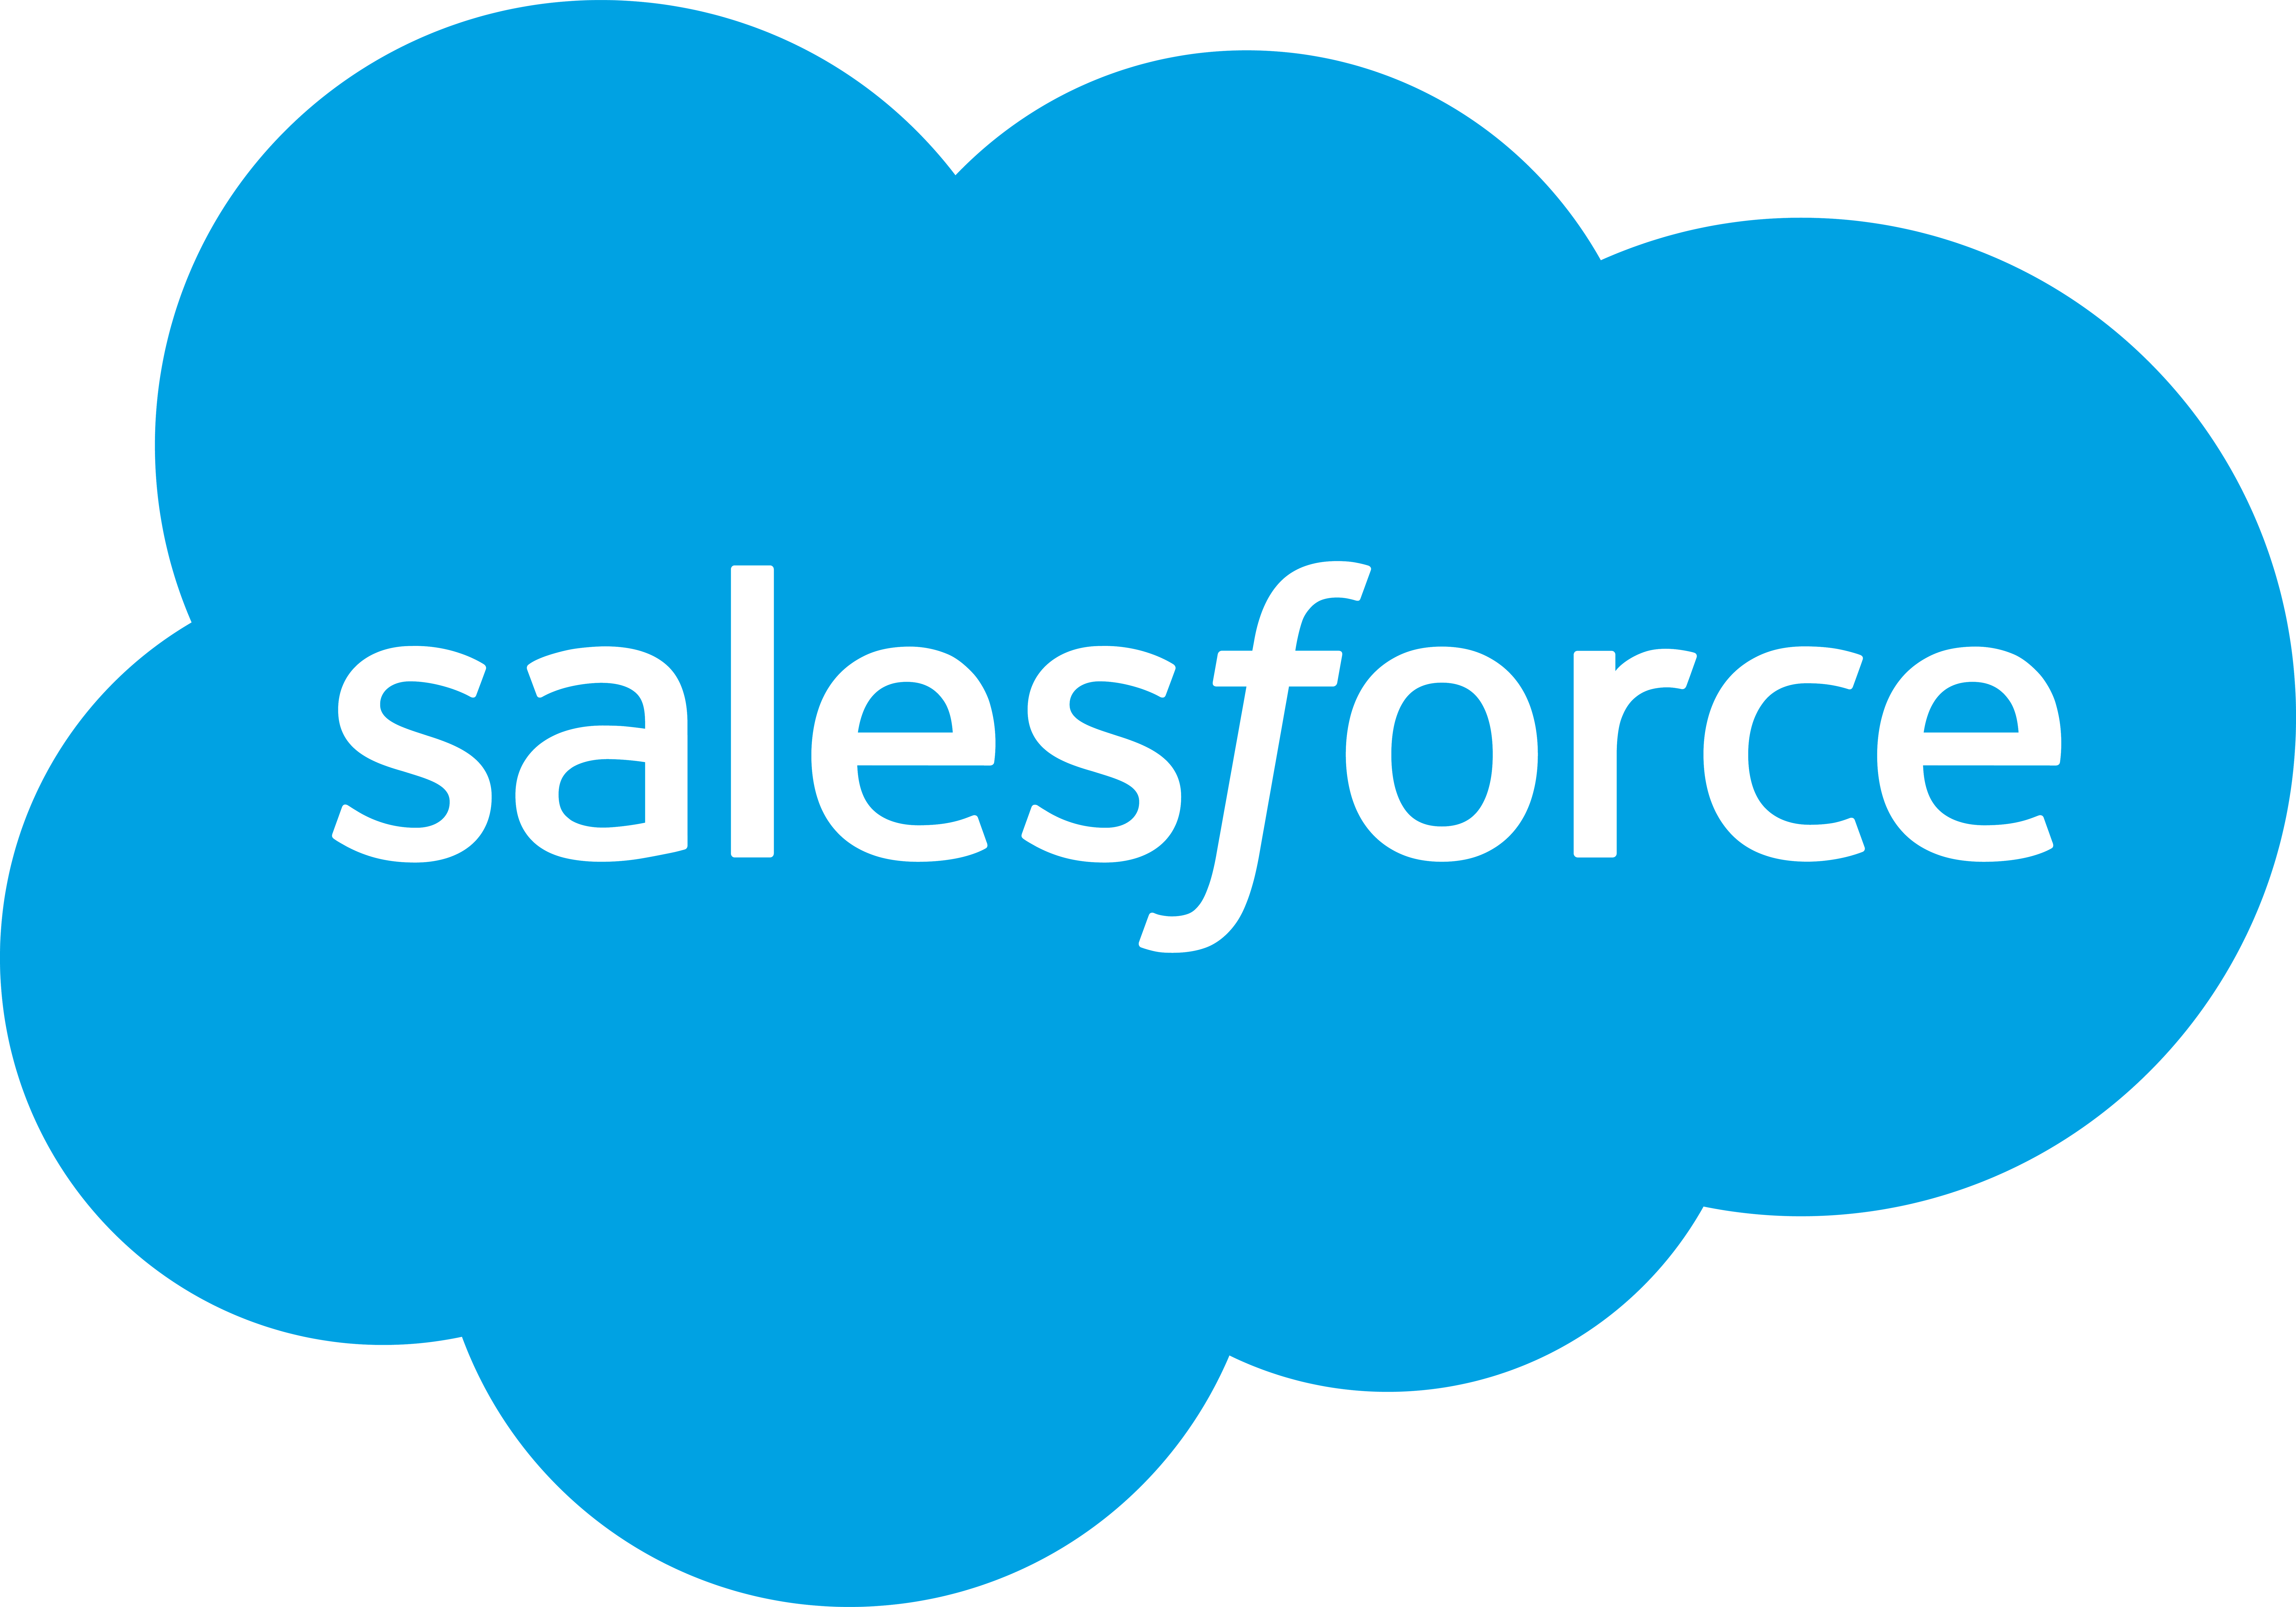 salesforce-trusted